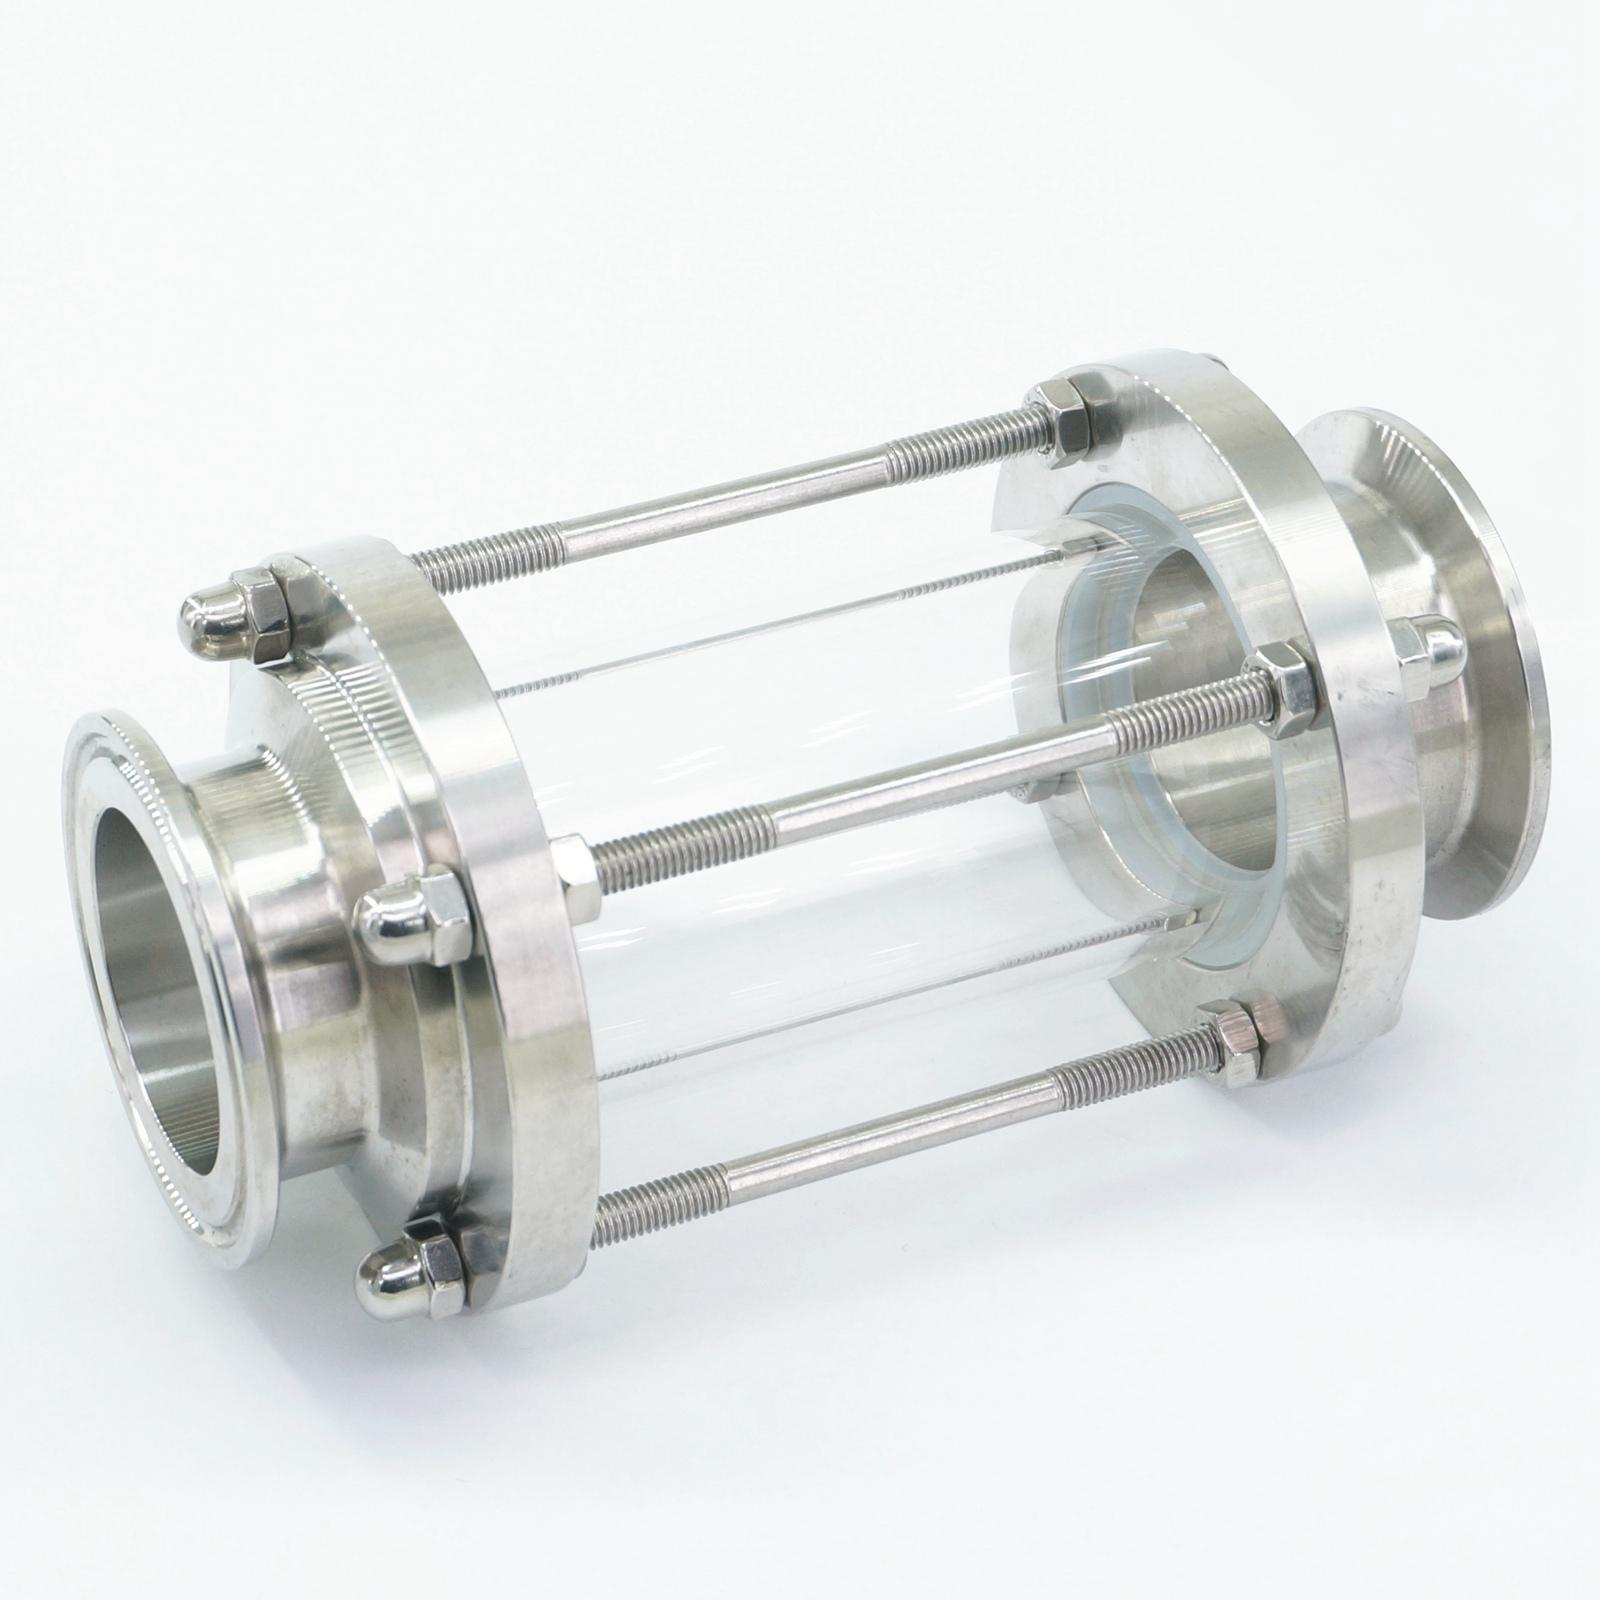 Fit 1-3/4 45mm Pipe OD x 2 Tri Clamp Flow Sight Glass Diopter Tower SUS 304 Stainless Steel Sanitary Home Brew Wine Beer